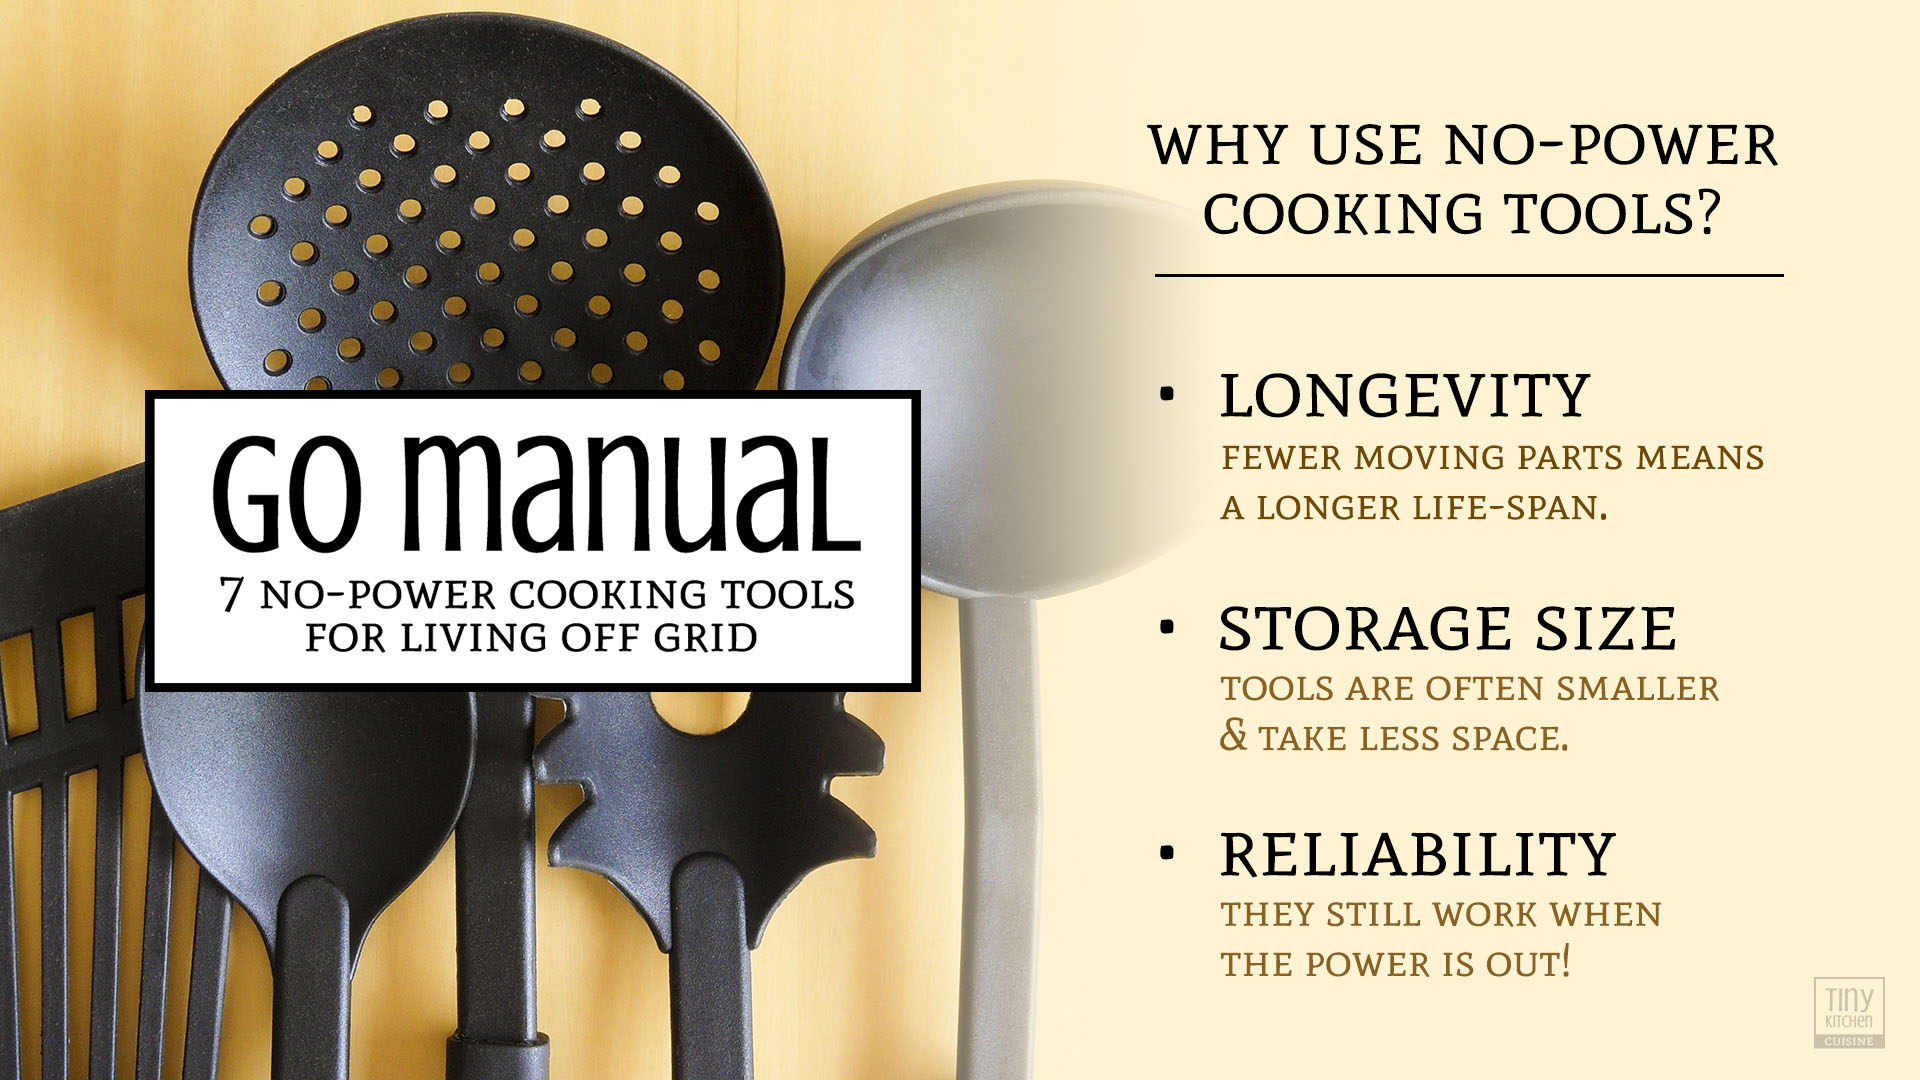 Why use no-power cooking tools?  Fewer moving parts means a longer life span. Tools are often smaller and take less counter space. Finally, they still work when the power goes out. Go manual with these 7 no-power cooking tools for living off the grid! | Tiny Kitchen Cuisine | http://tiny.kitchen